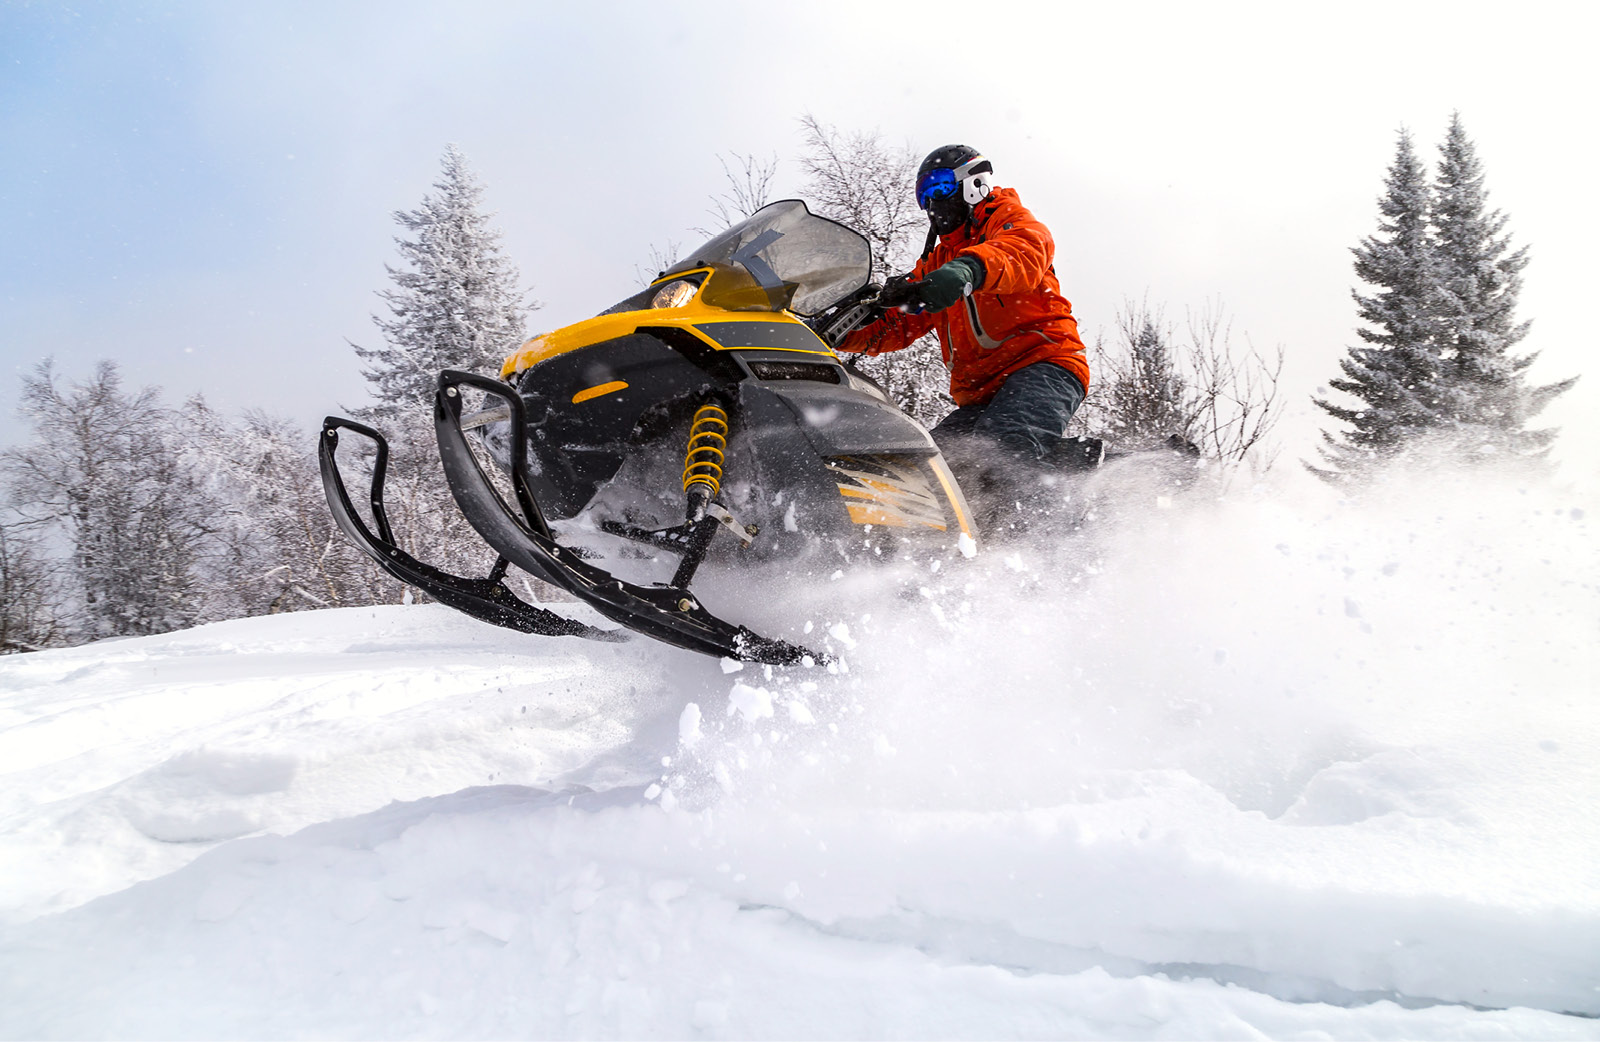 Image of a rider on a yellow snowmobile on snow in the winter.